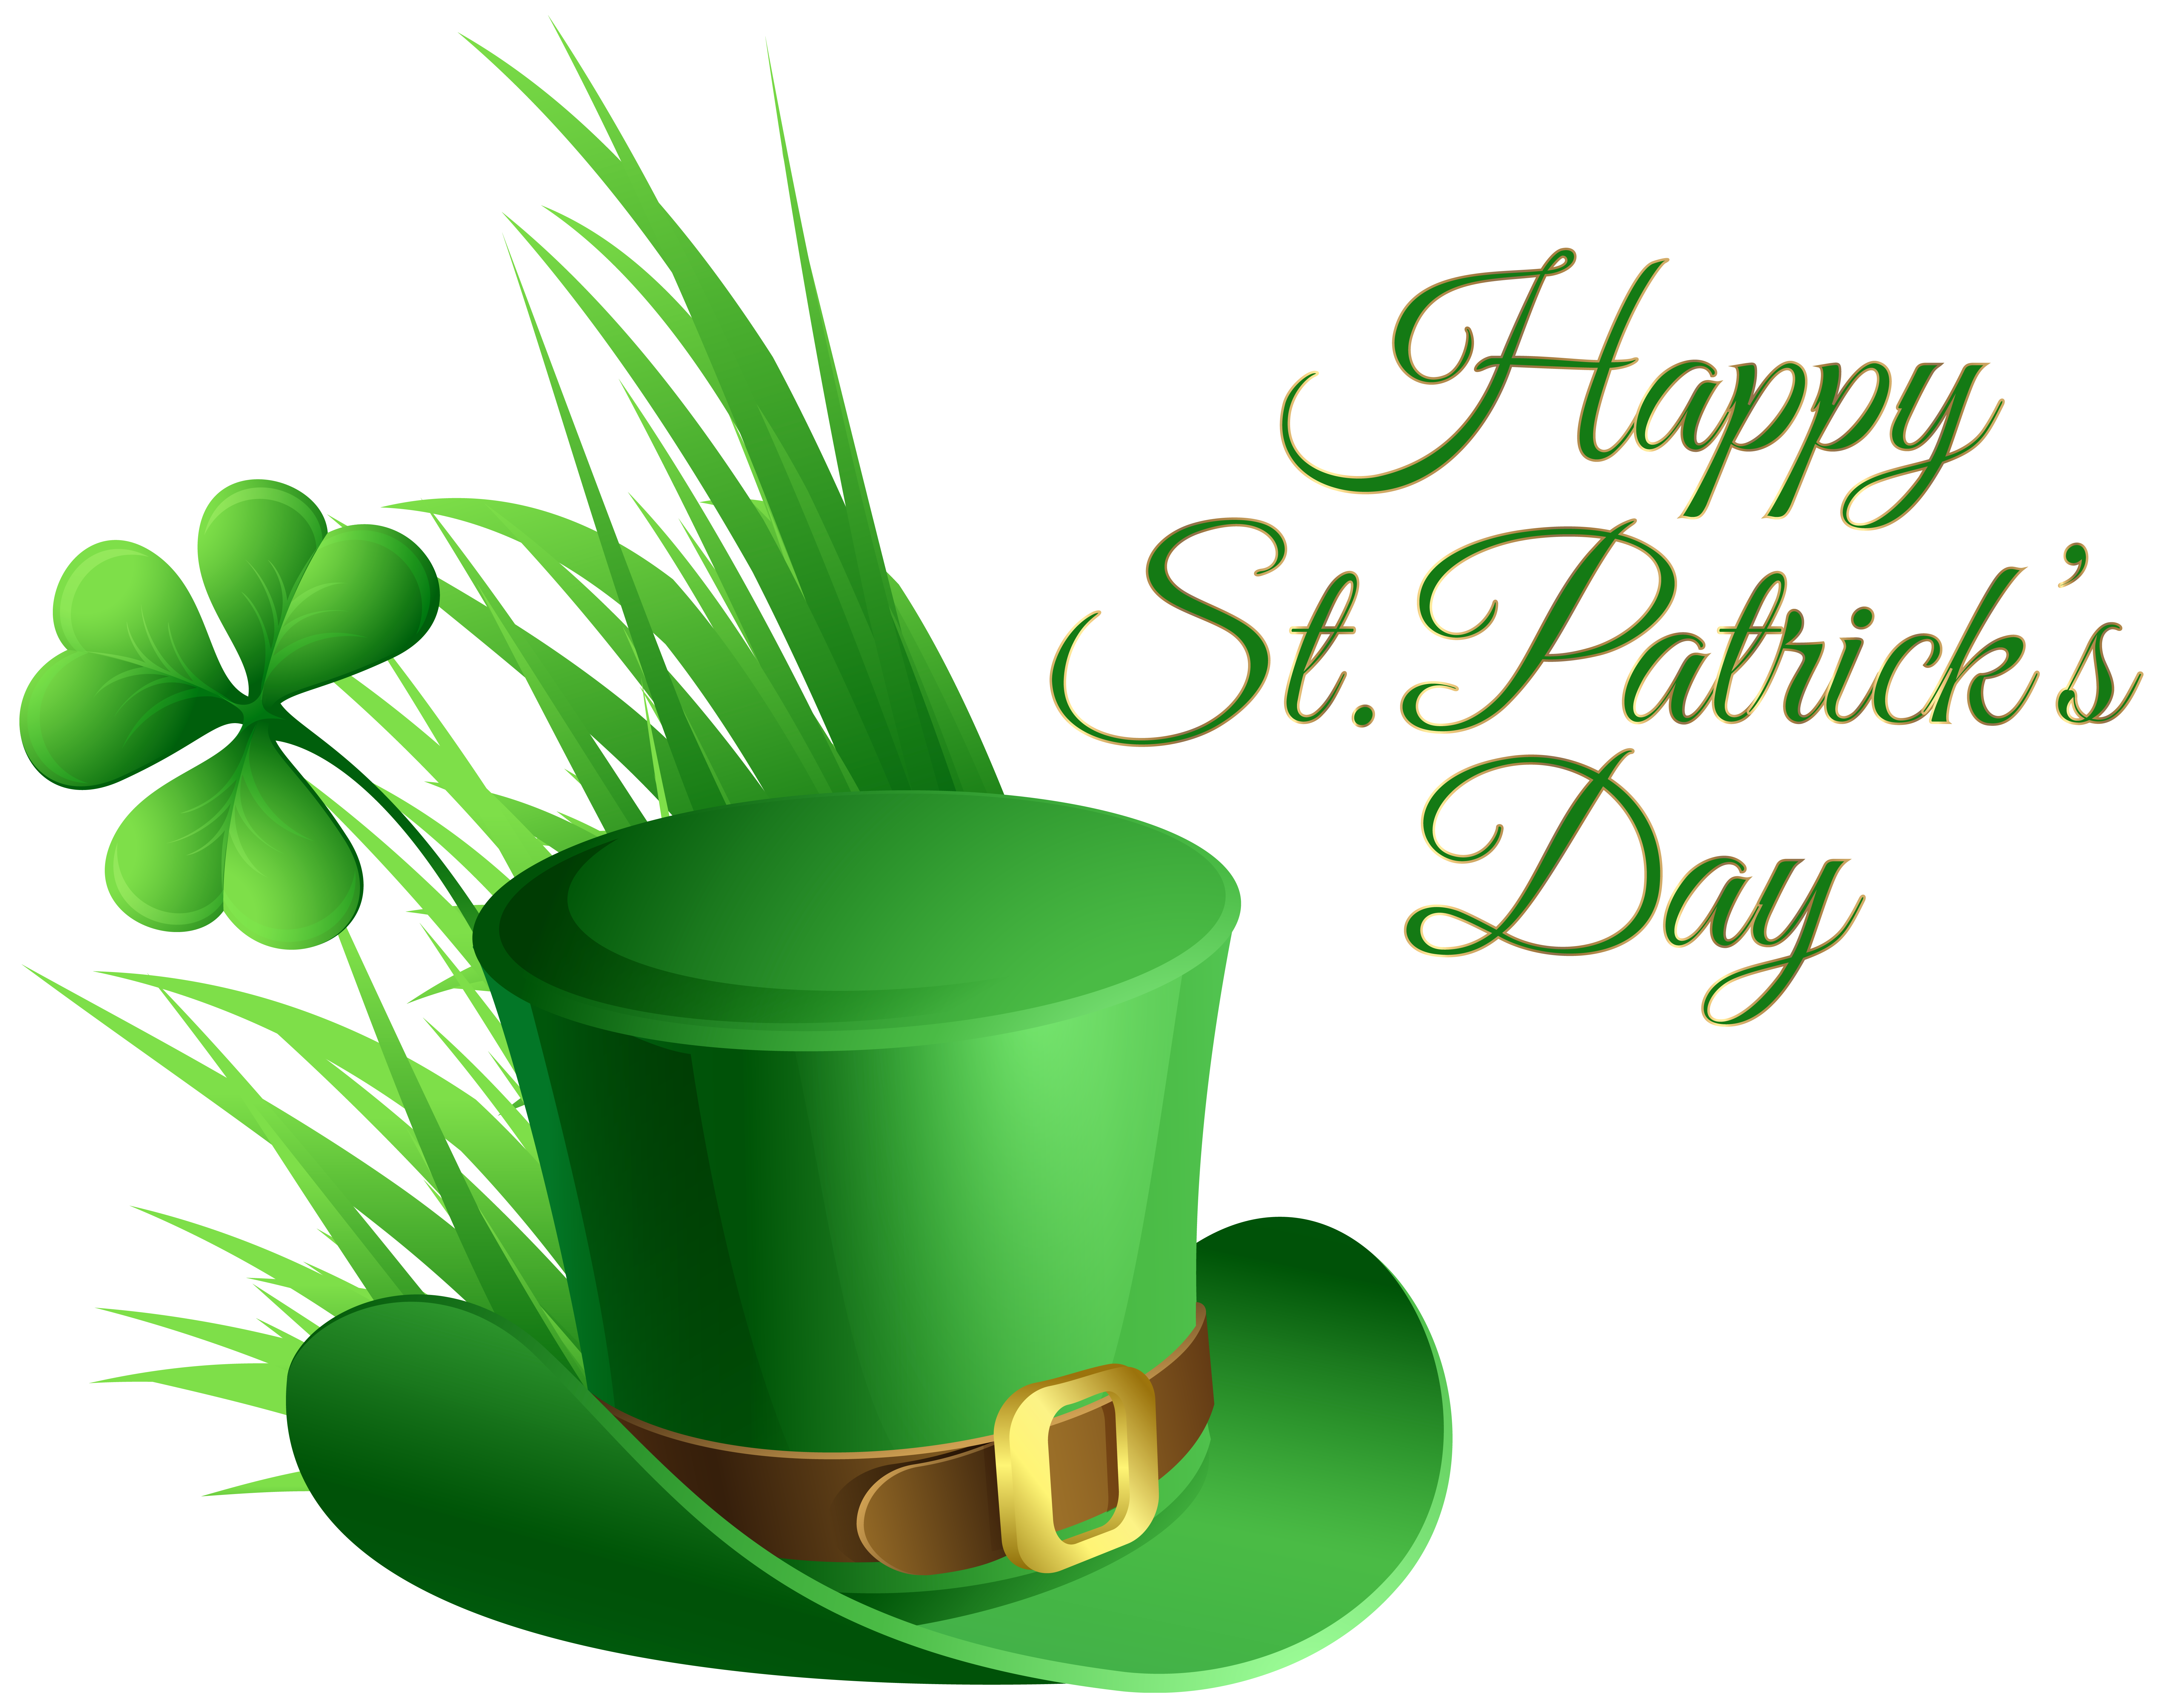 7246x5723 St. Patrick's Day Clipart St Patricks Day Background Clipart